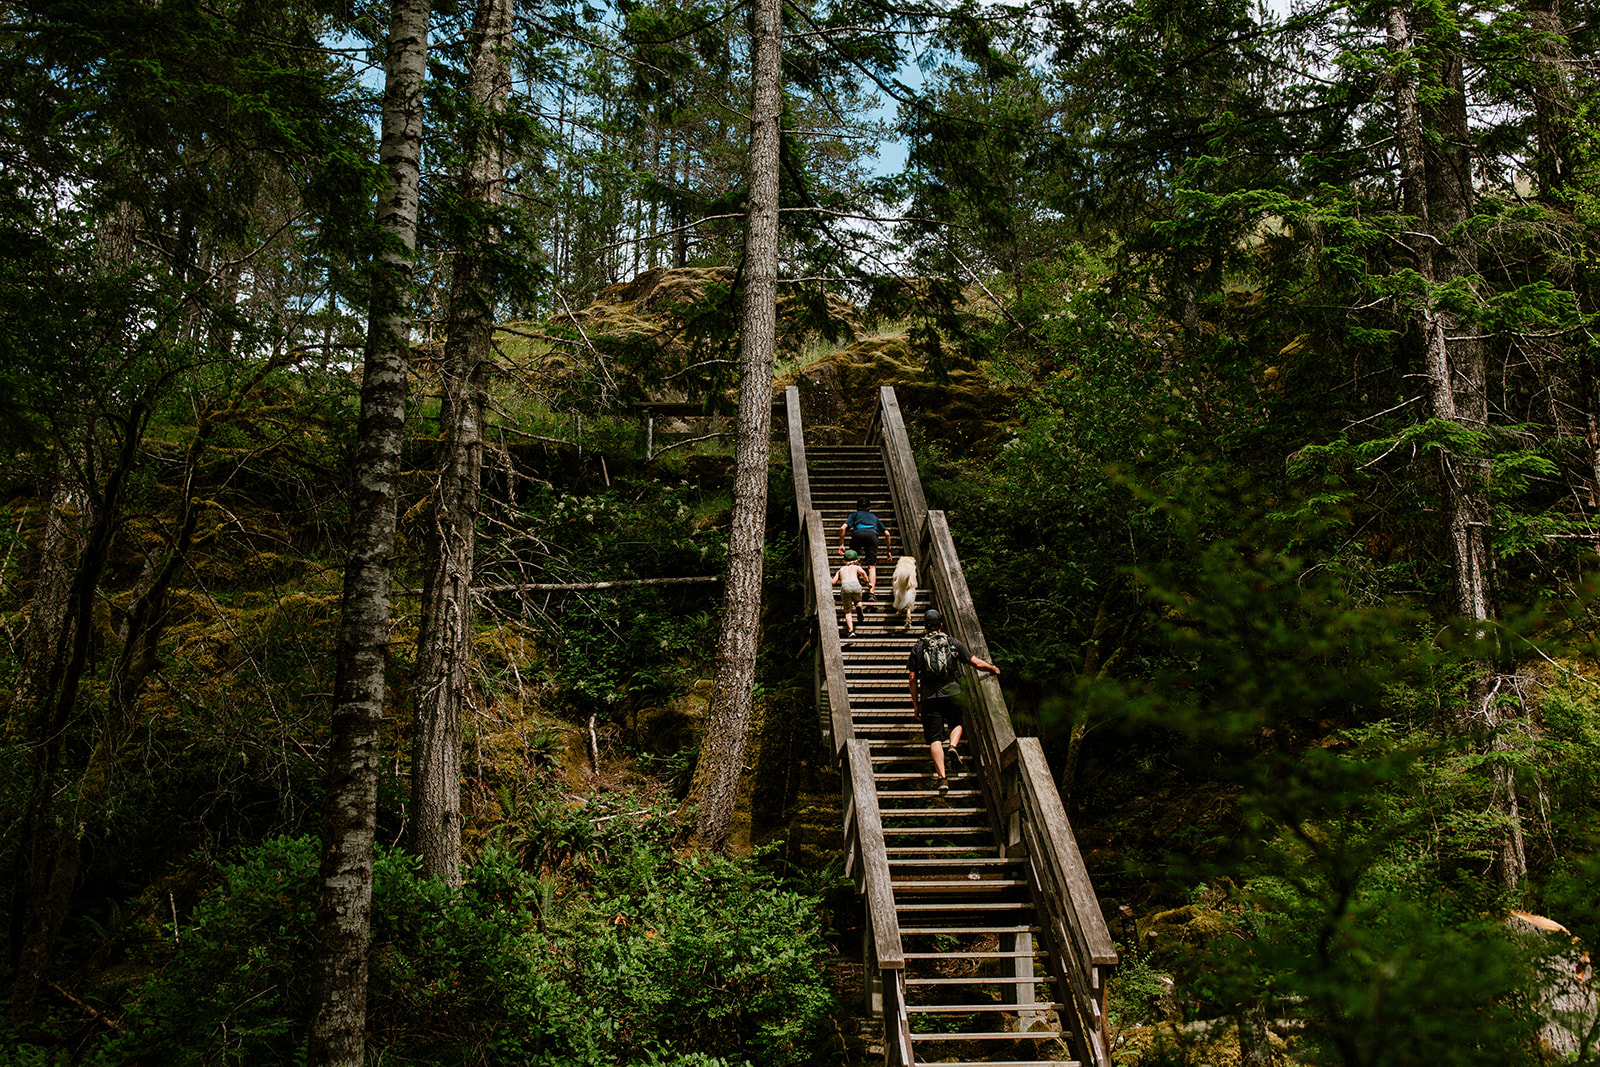 Stairs on the Ripple Rock Trail